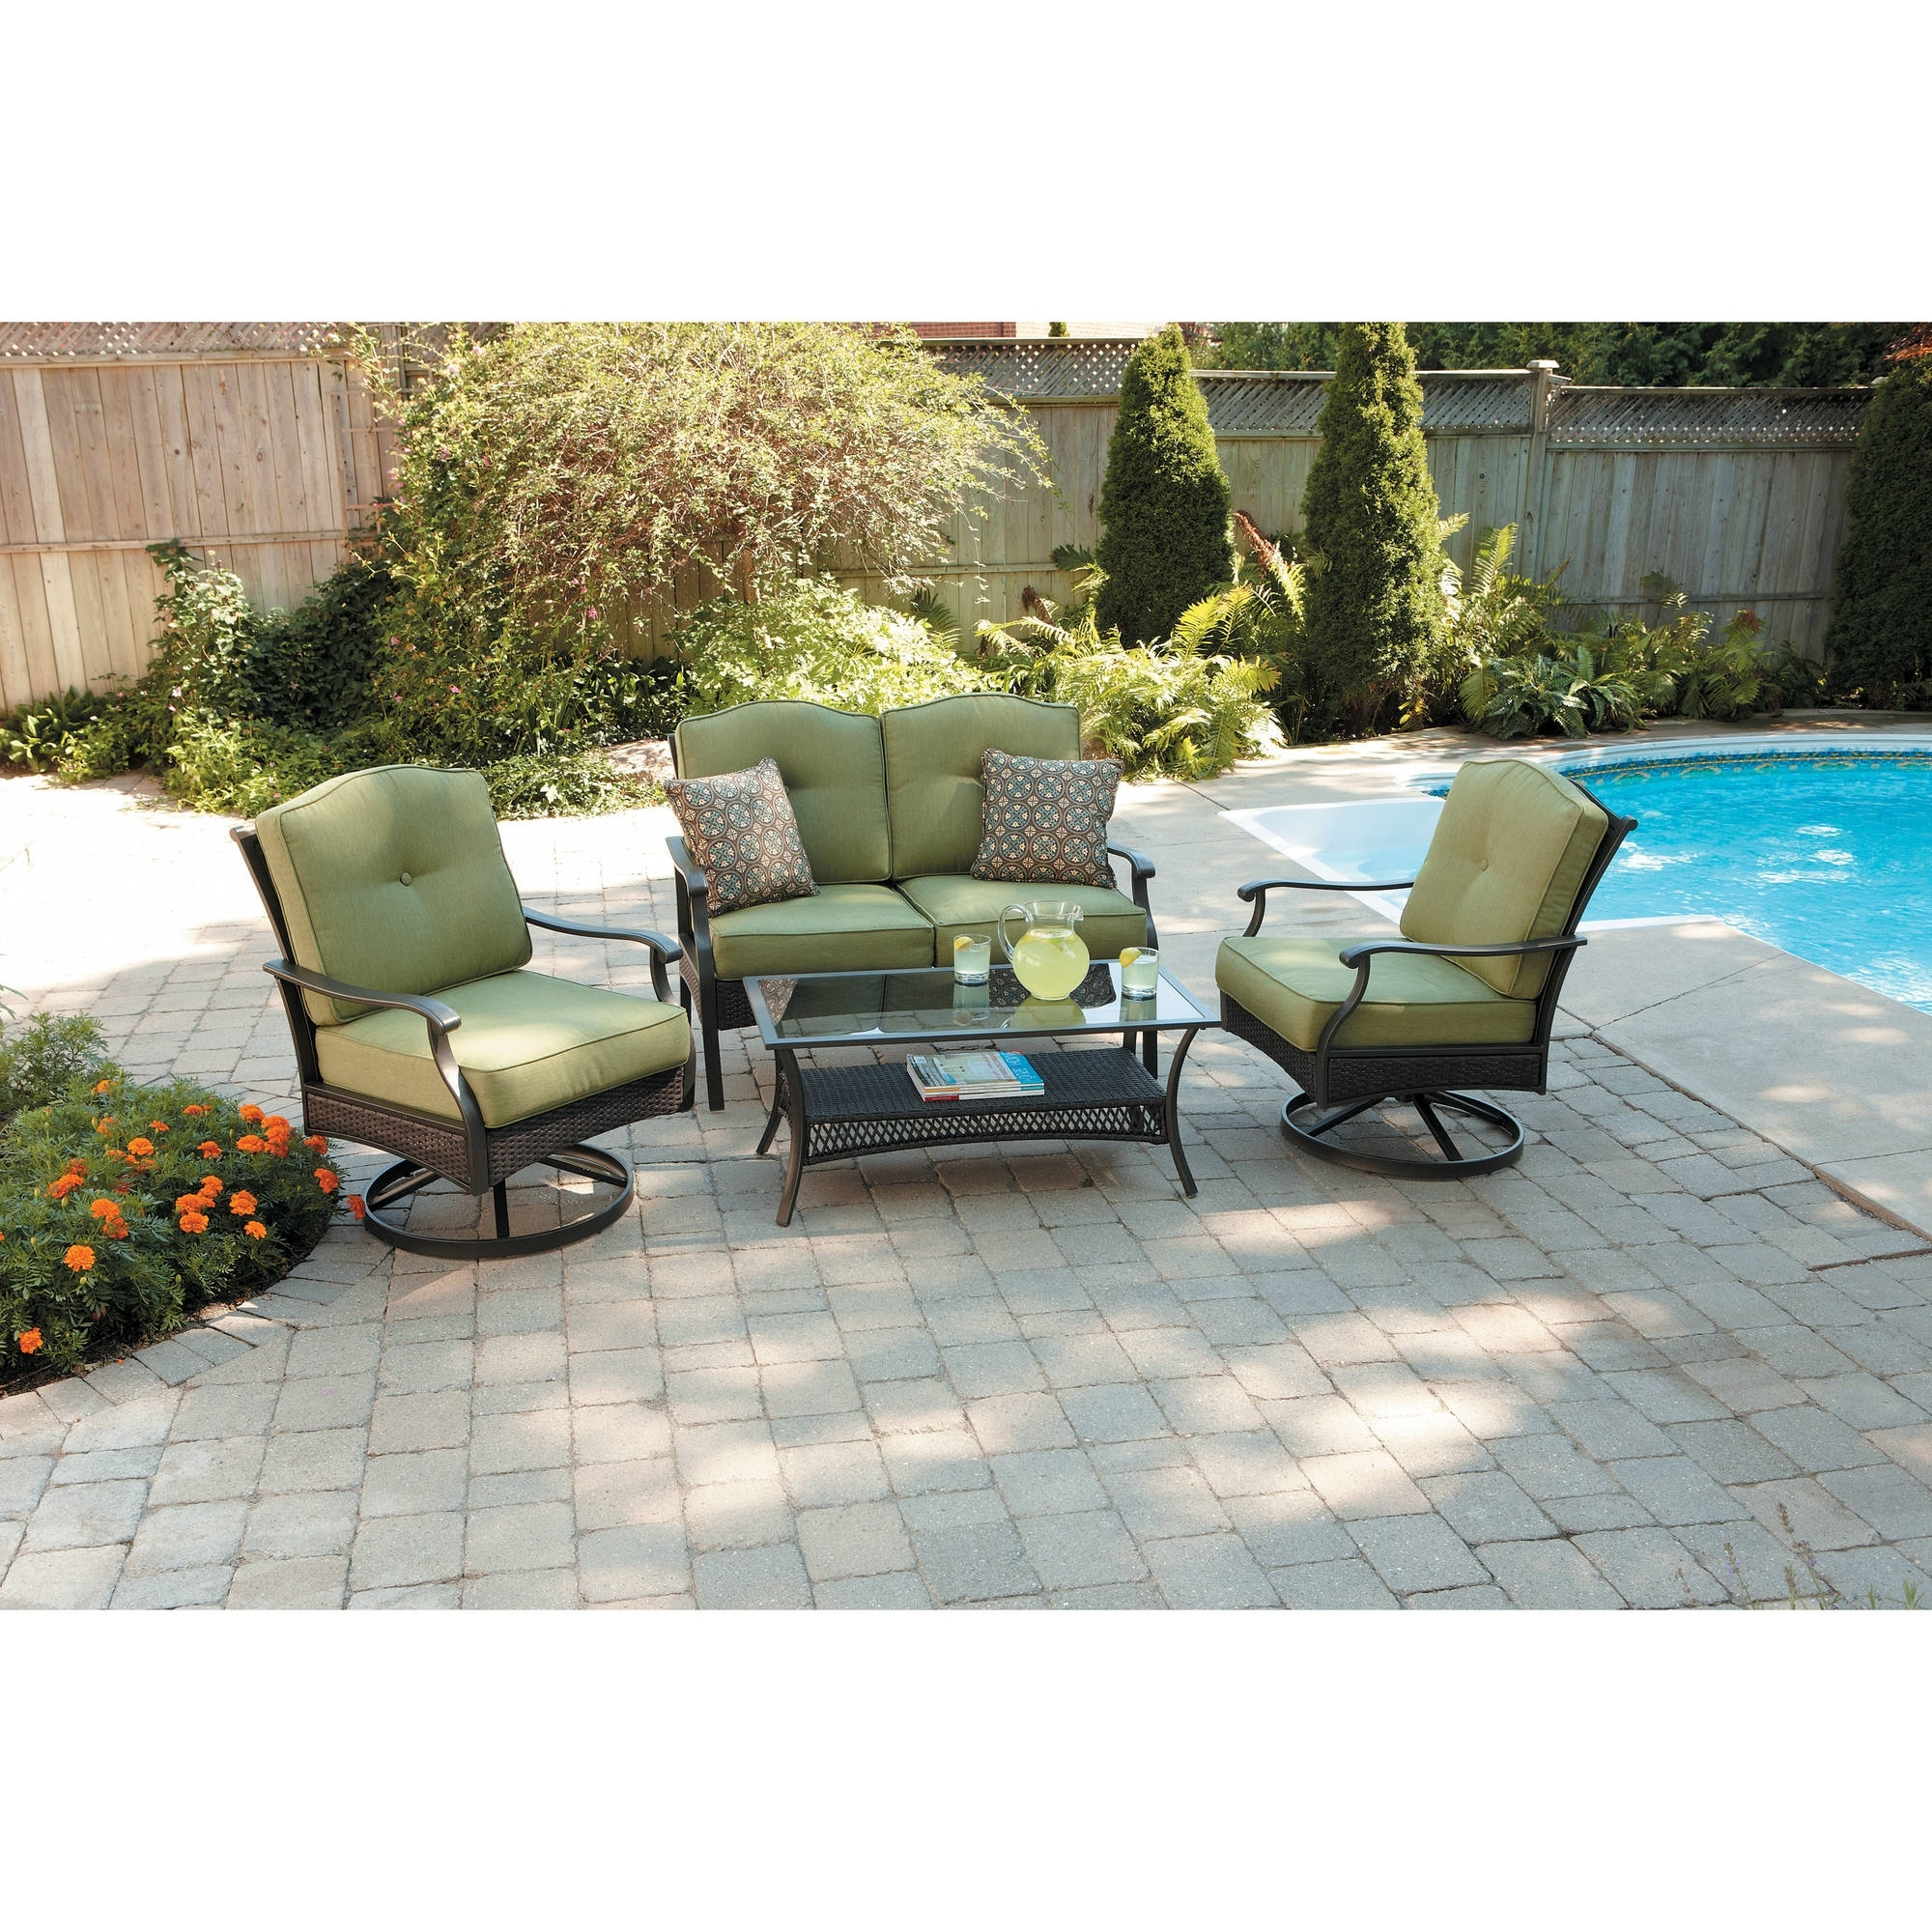 Patio Conversation Sets With Swivel Chairs Regarding Well Known Better Homes And Gardens Providence 4 Piece Patio Conversation Set (View 4 of 20)